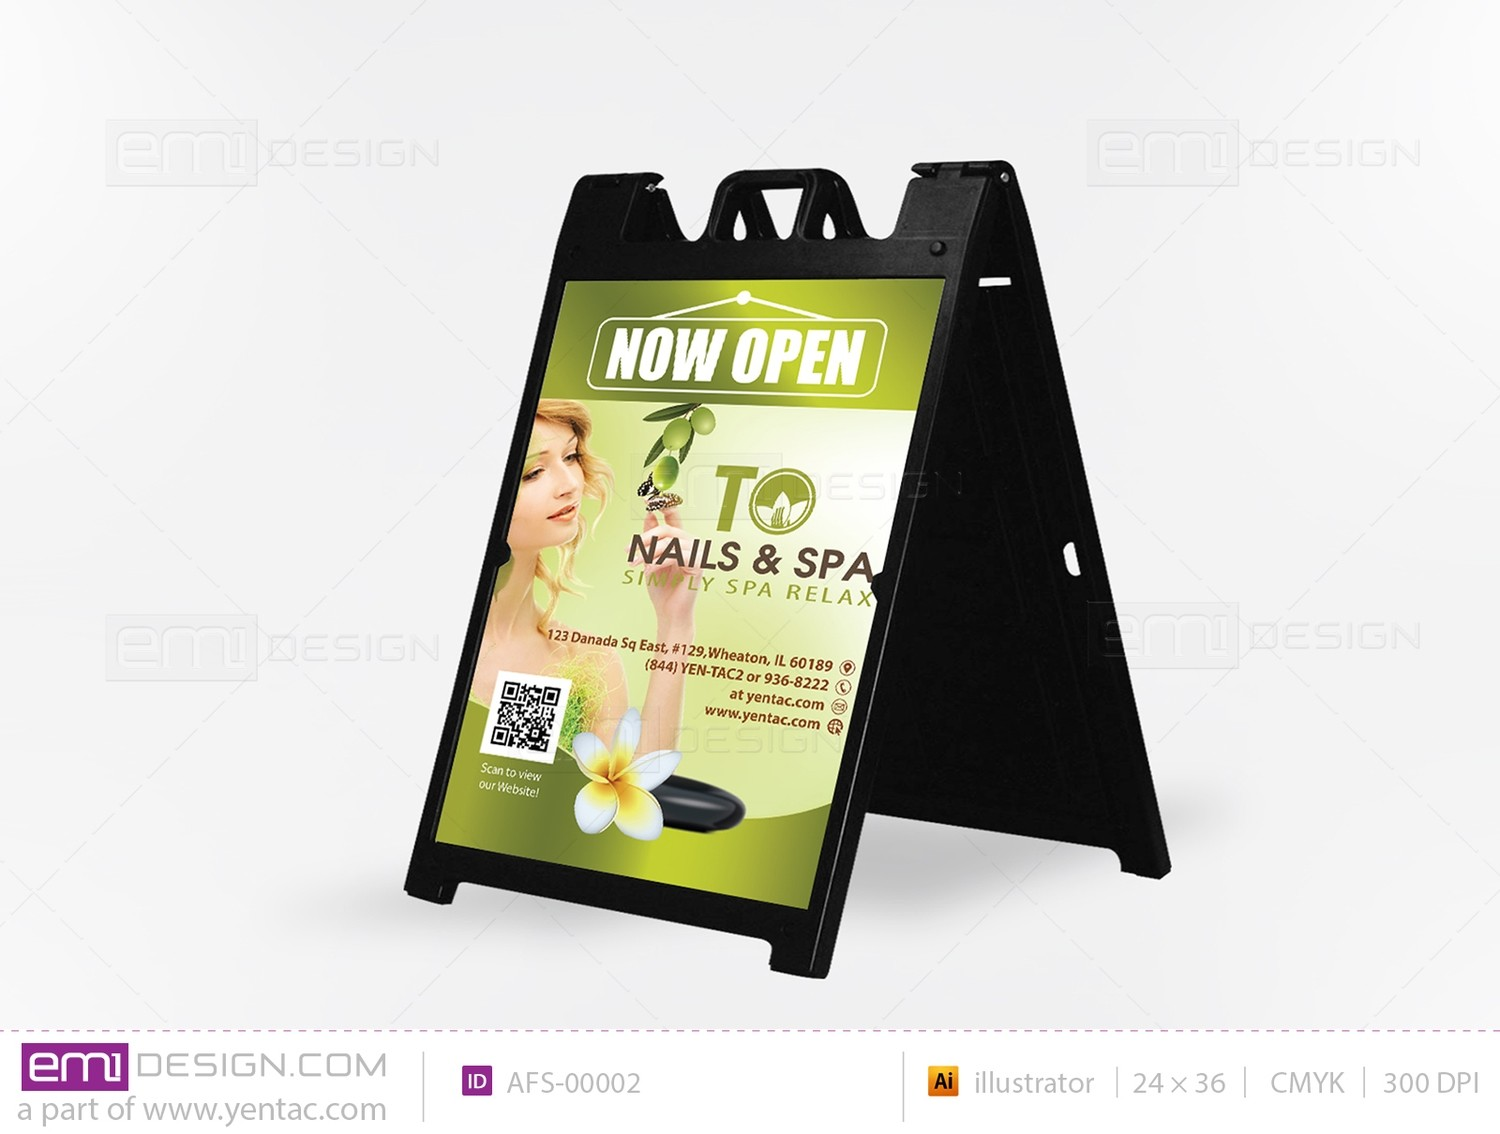 05 - A Frame Sign - Sidewalk - Template AFS-00002